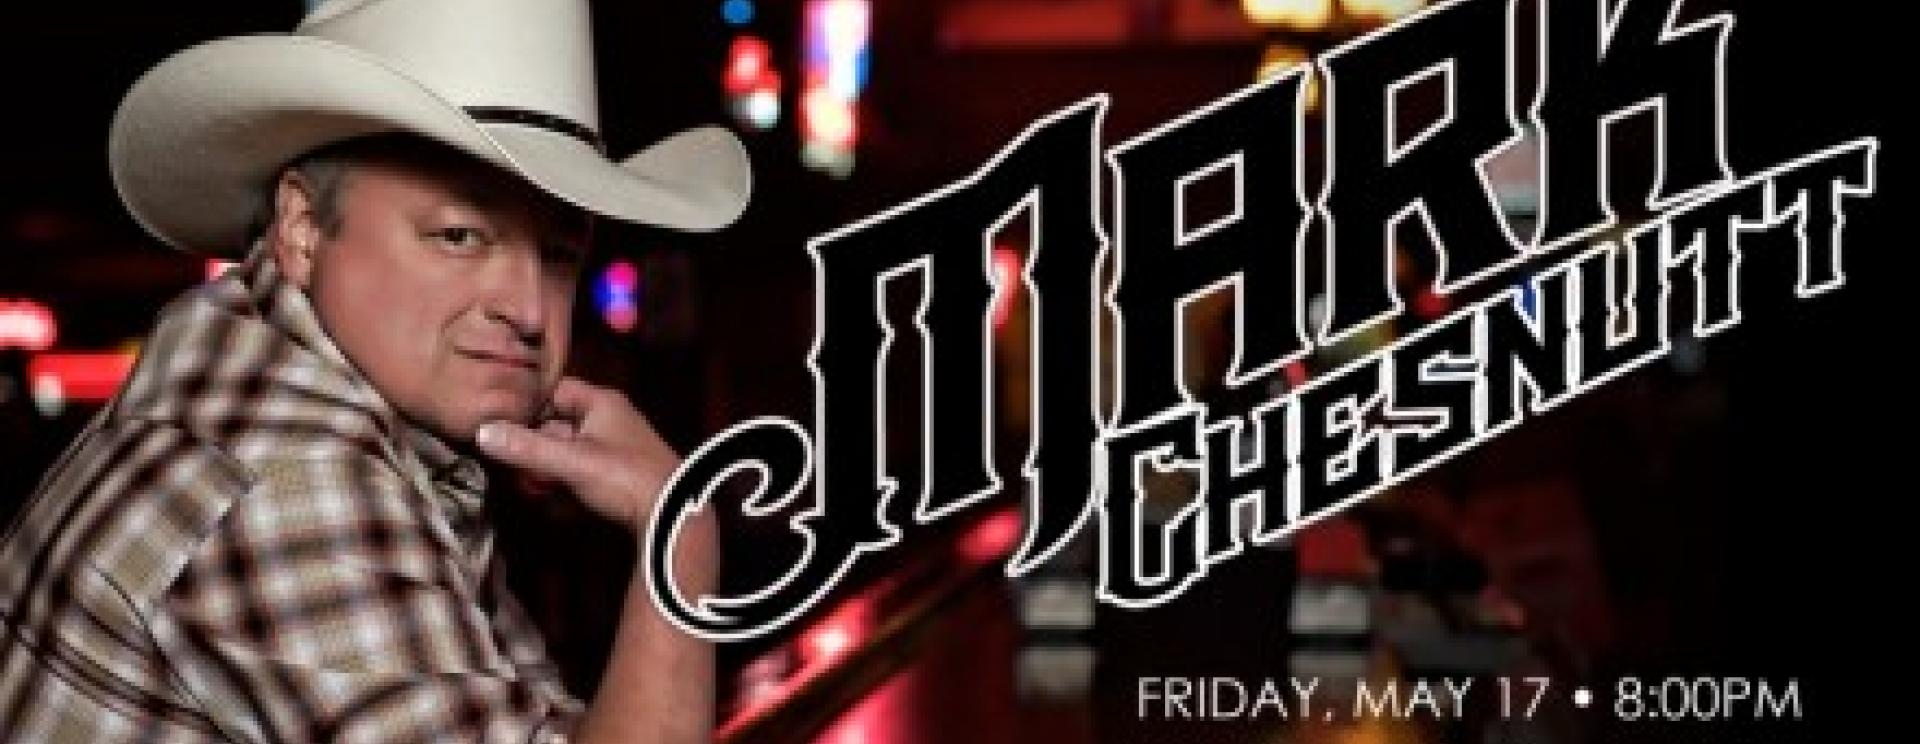 Mark Chesnutt in Concert